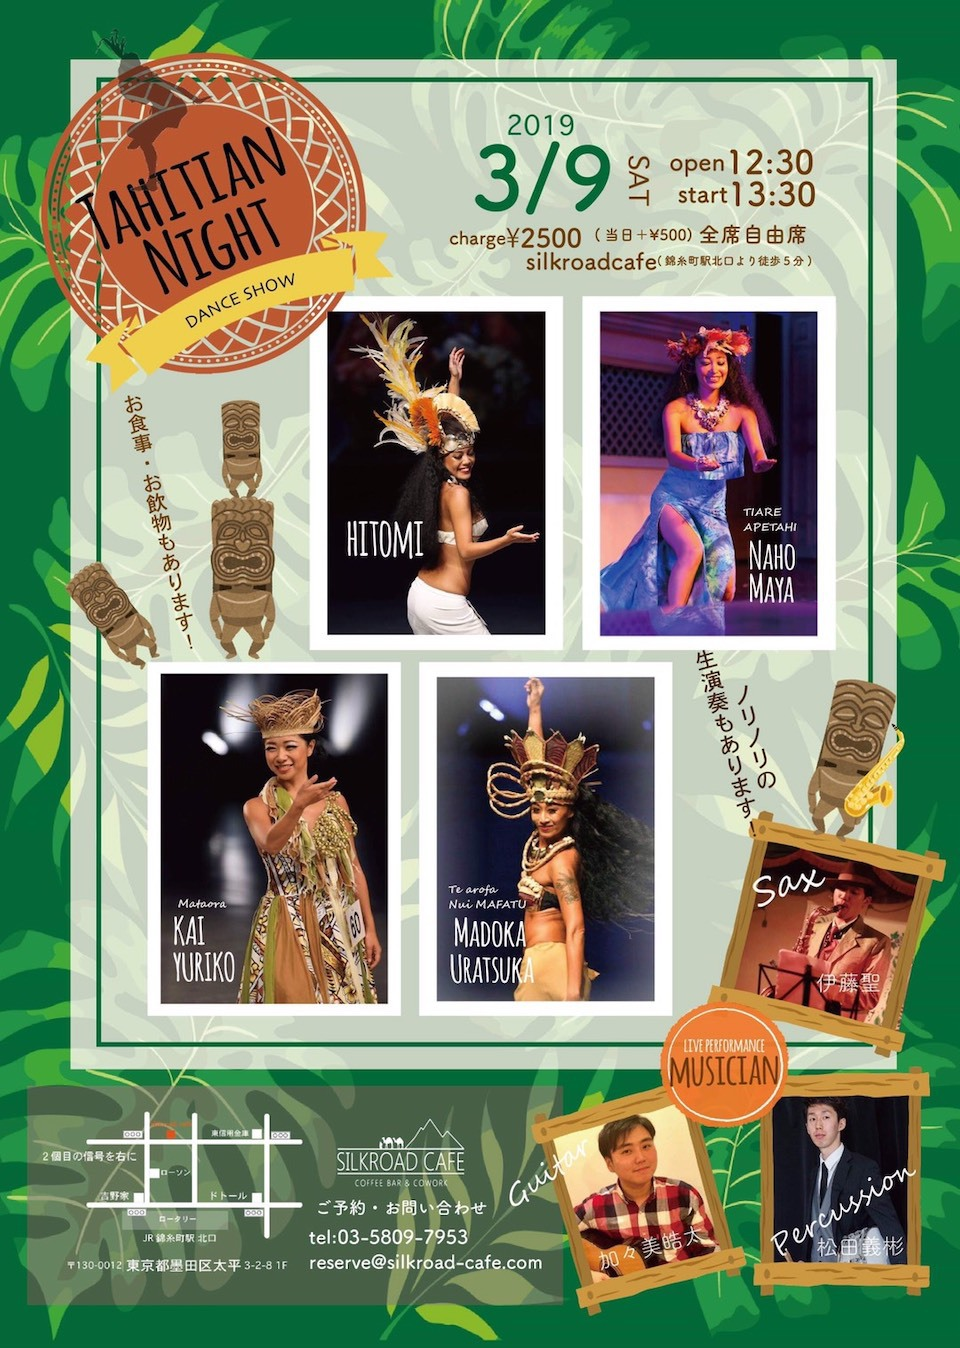 Event Information:TAHITIAN NIGHT DANCE SHOW